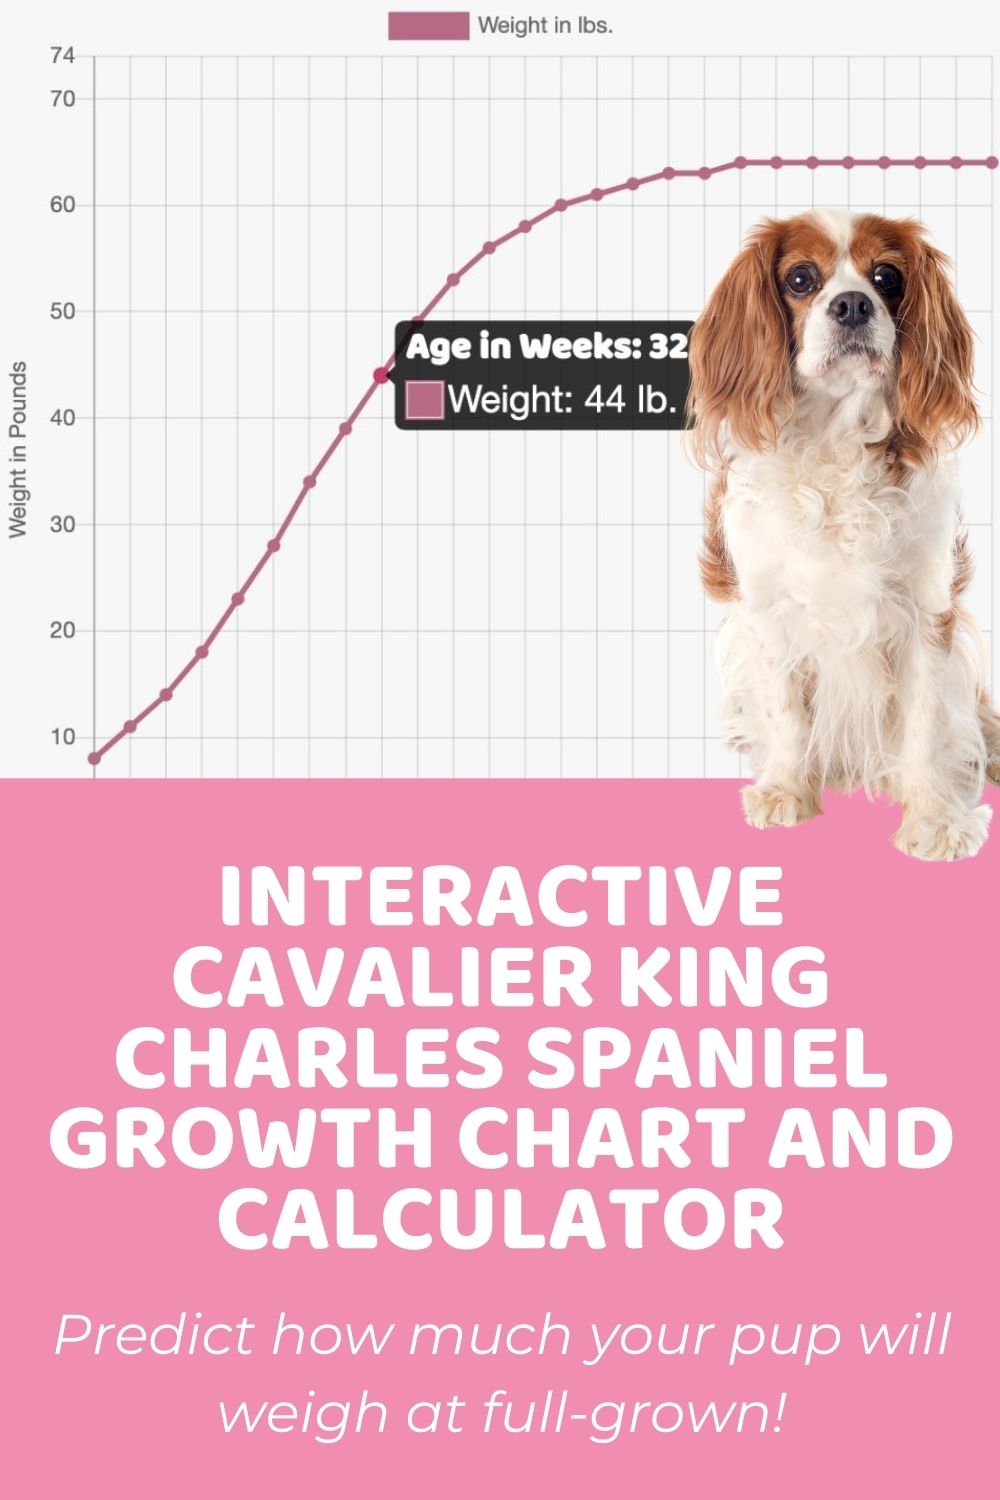 Interactive Cavalier King Charles Spaniel Growth Chart and Calculator